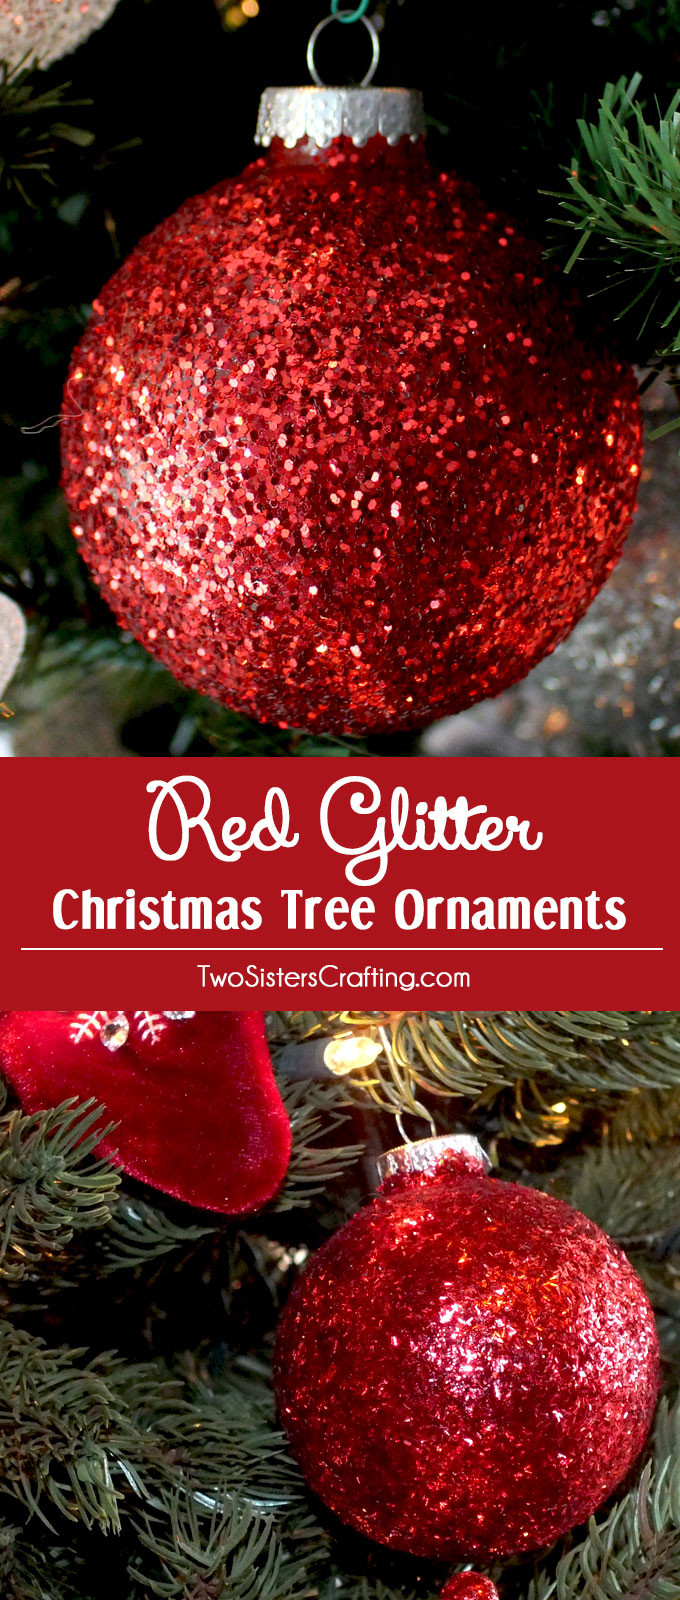 Funny Christmas Tree ornaments Unique Red Glitter Christmas Tree ornaments Two Sisters Of Awesome 43 Images Funny Christmas Tree ornaments